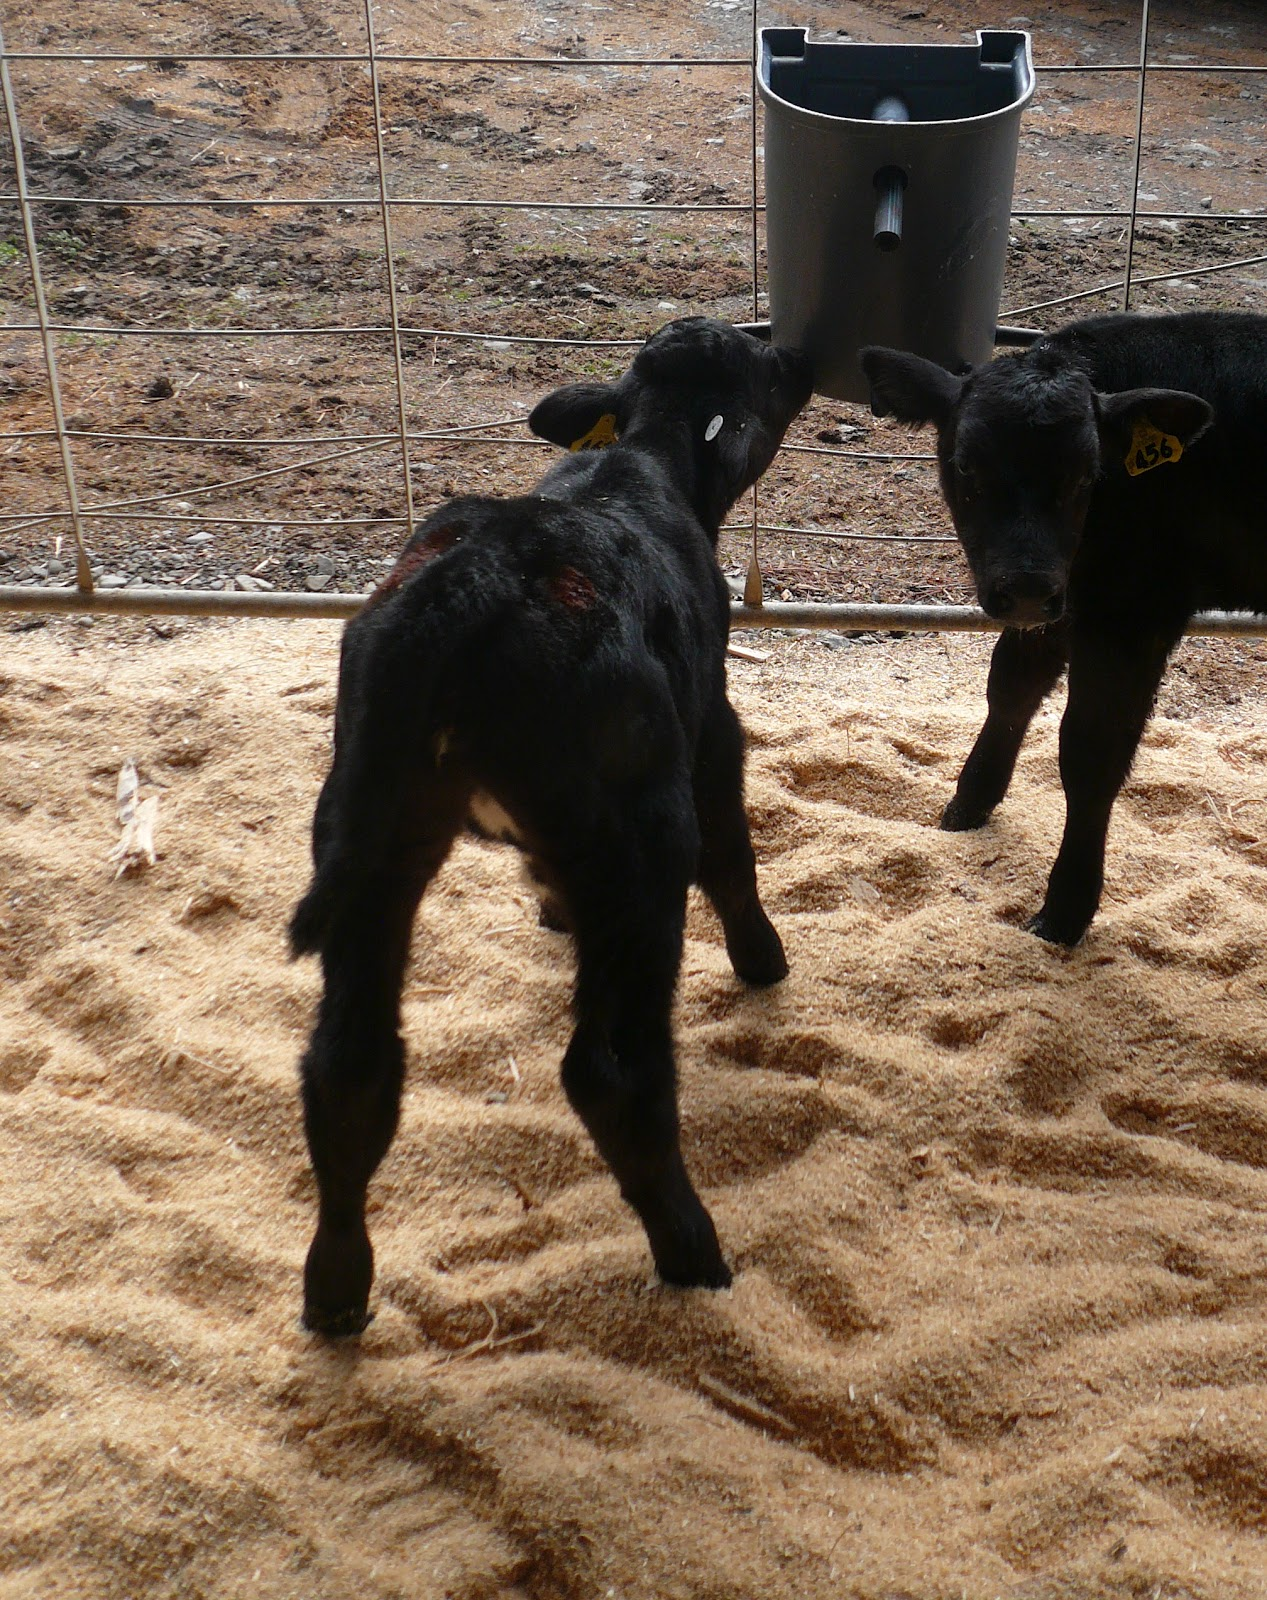 the 5 teat milk feeder used to teach smaller groups of calves to drink